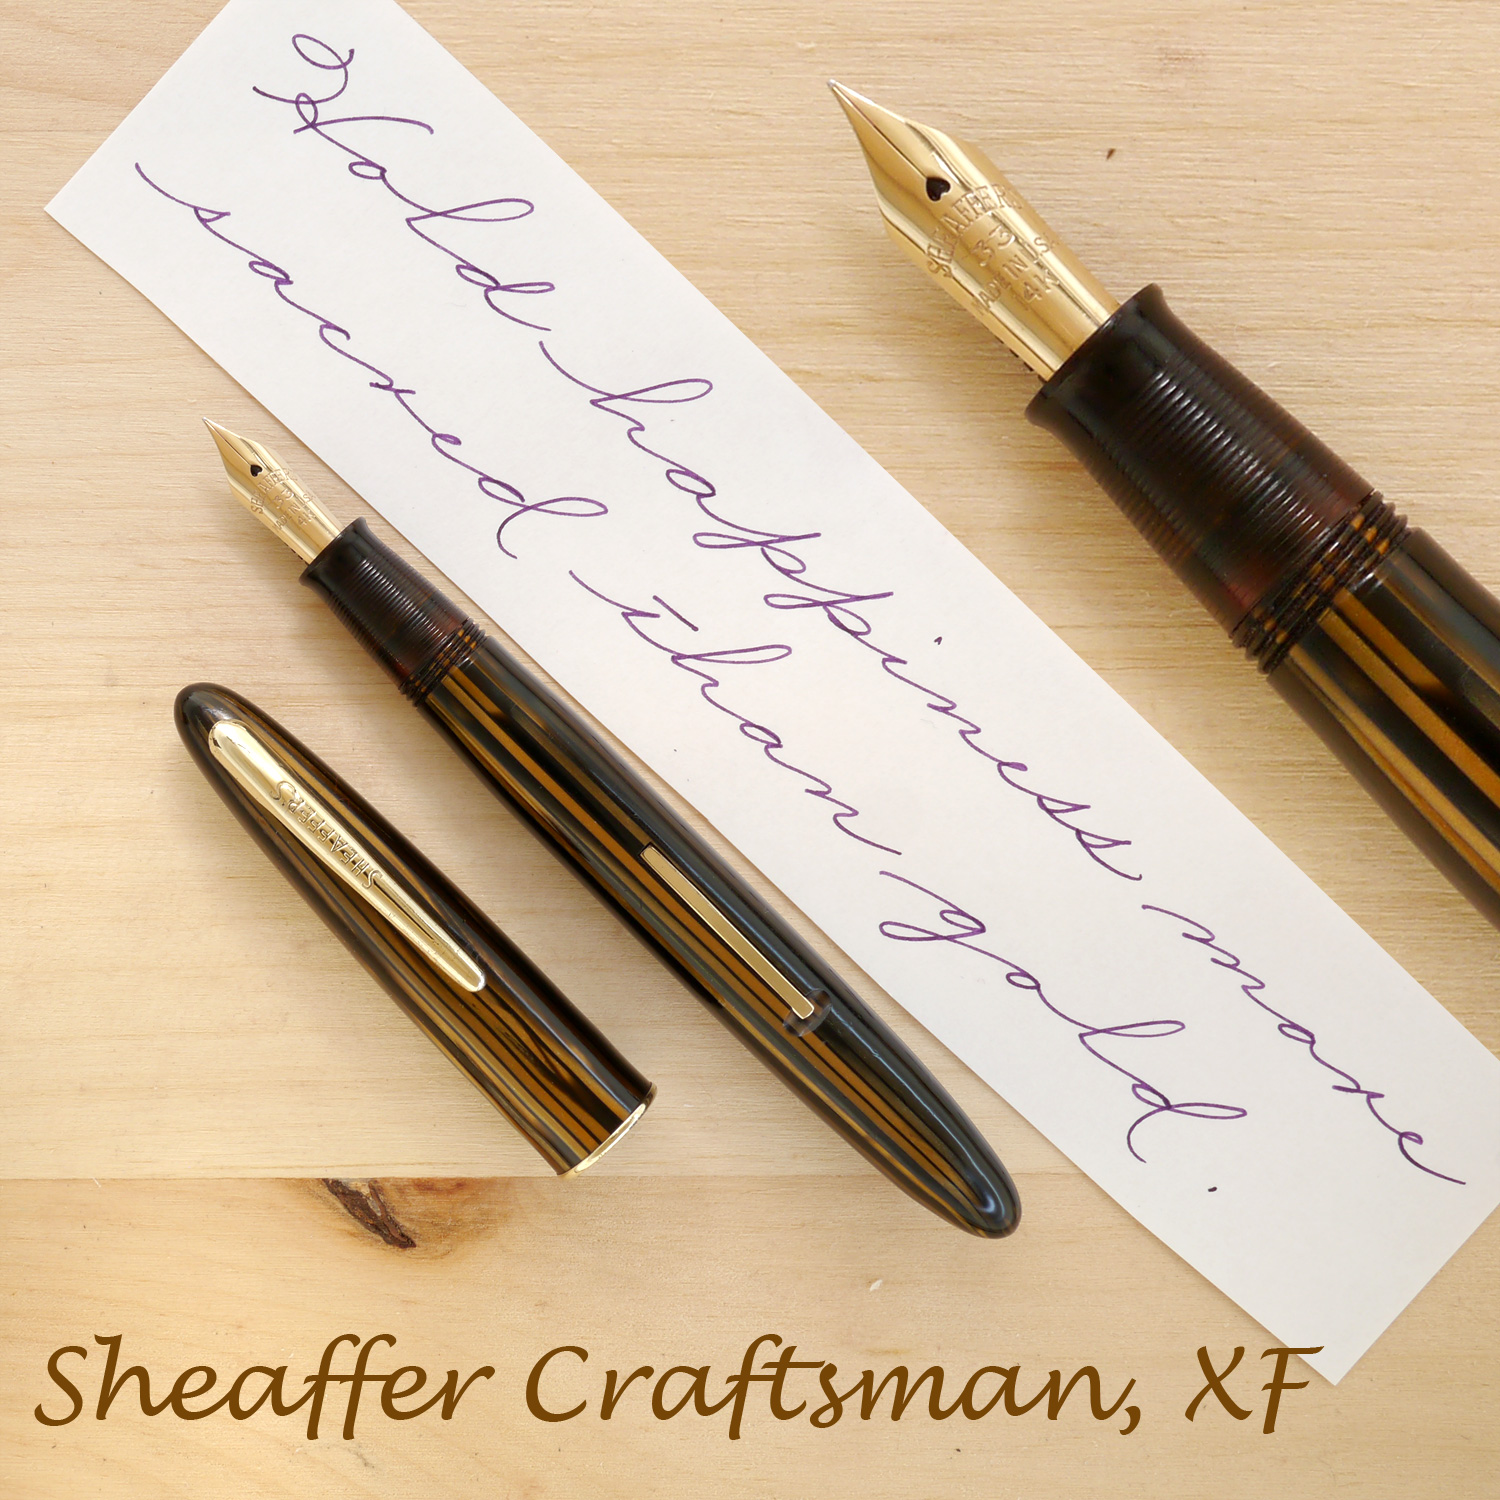 Sheaffer Craftsman, Golden Brown, XF, uncapped